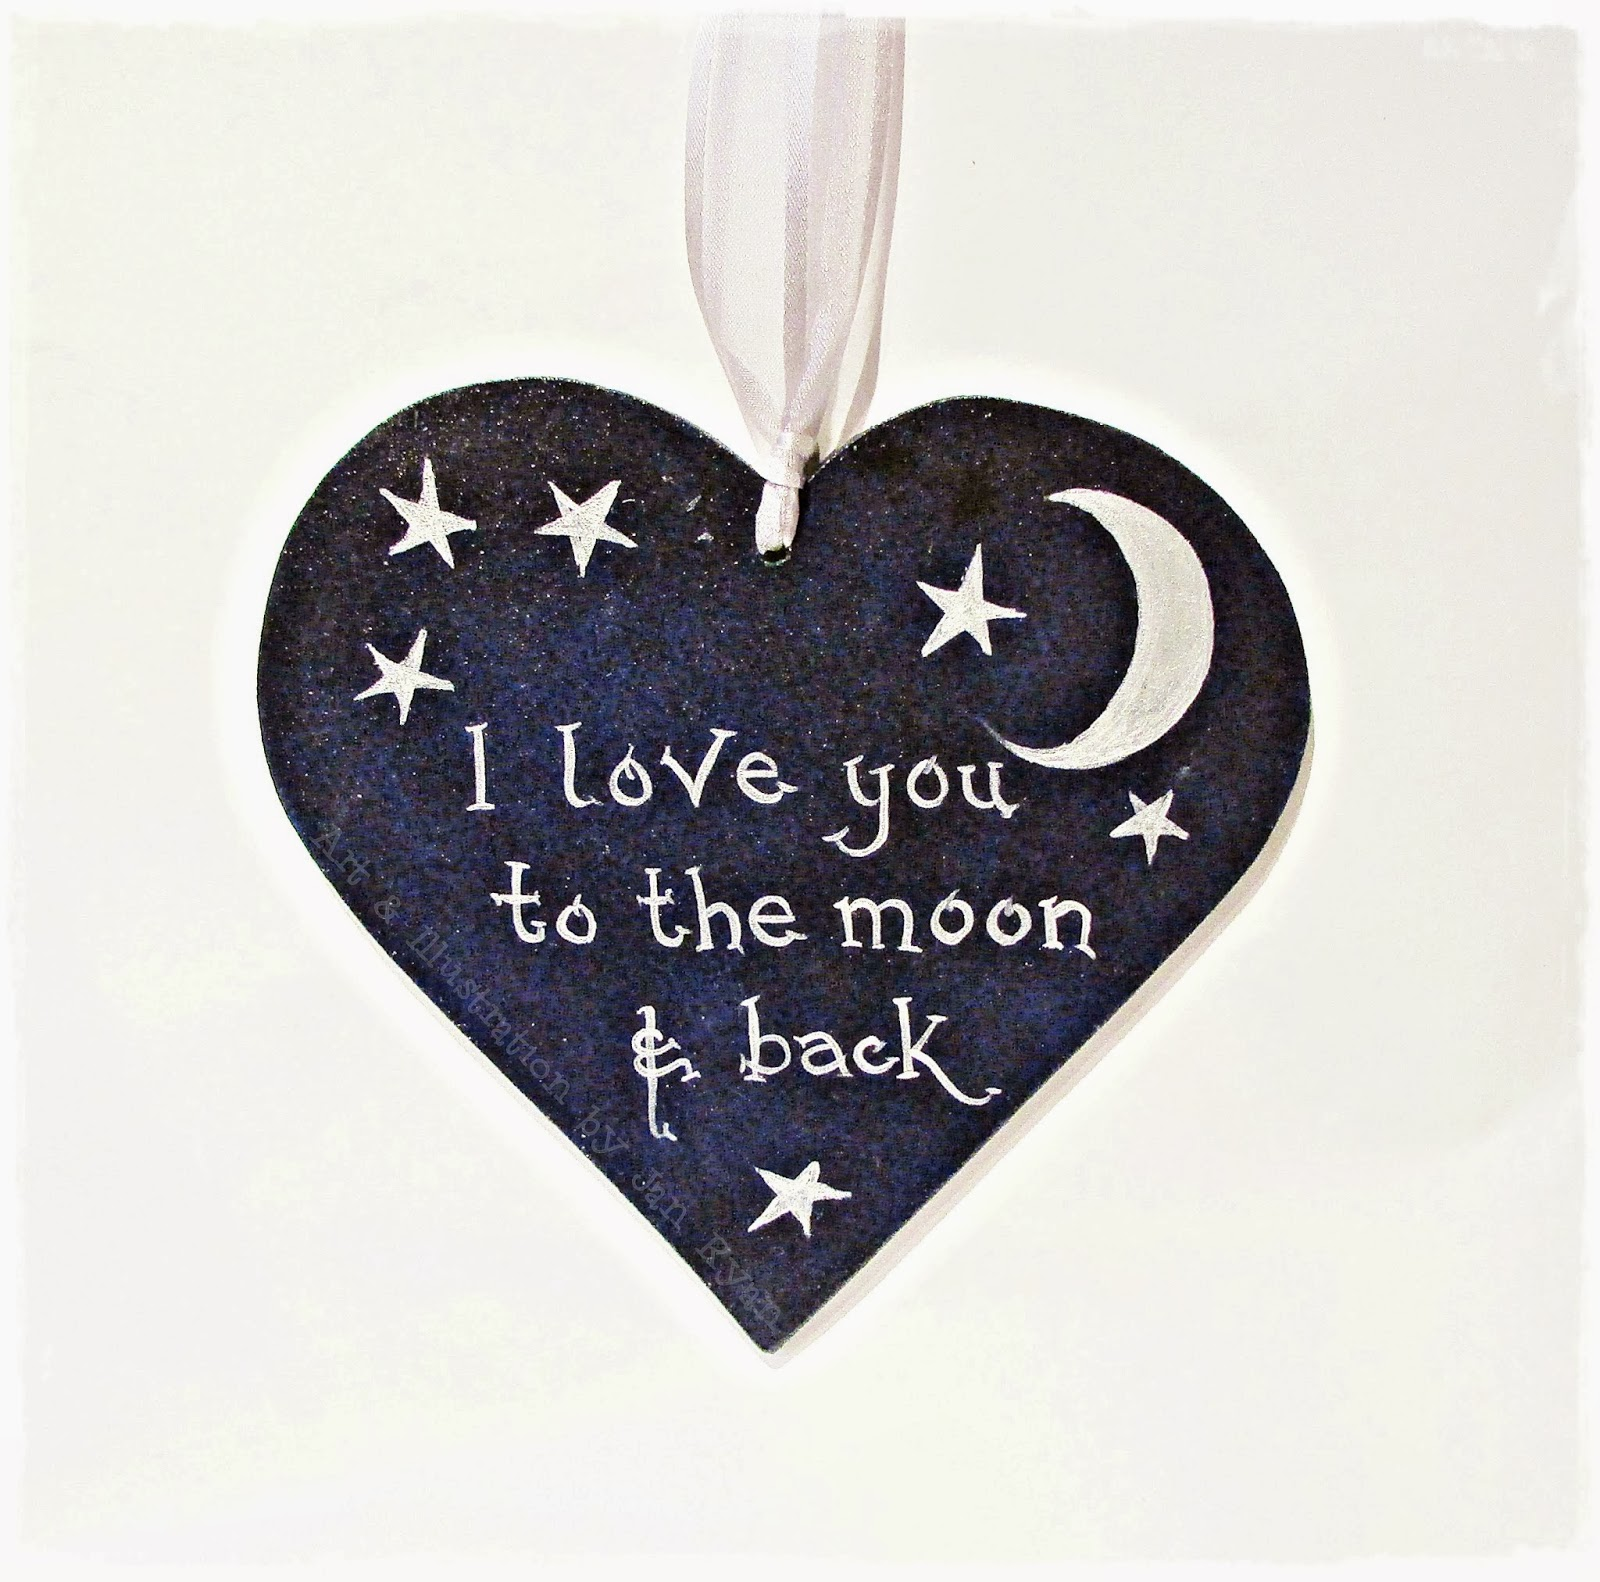 I Love You To The Moon And Back: Handcrafted By Picto: I Love You To The Moon & Back